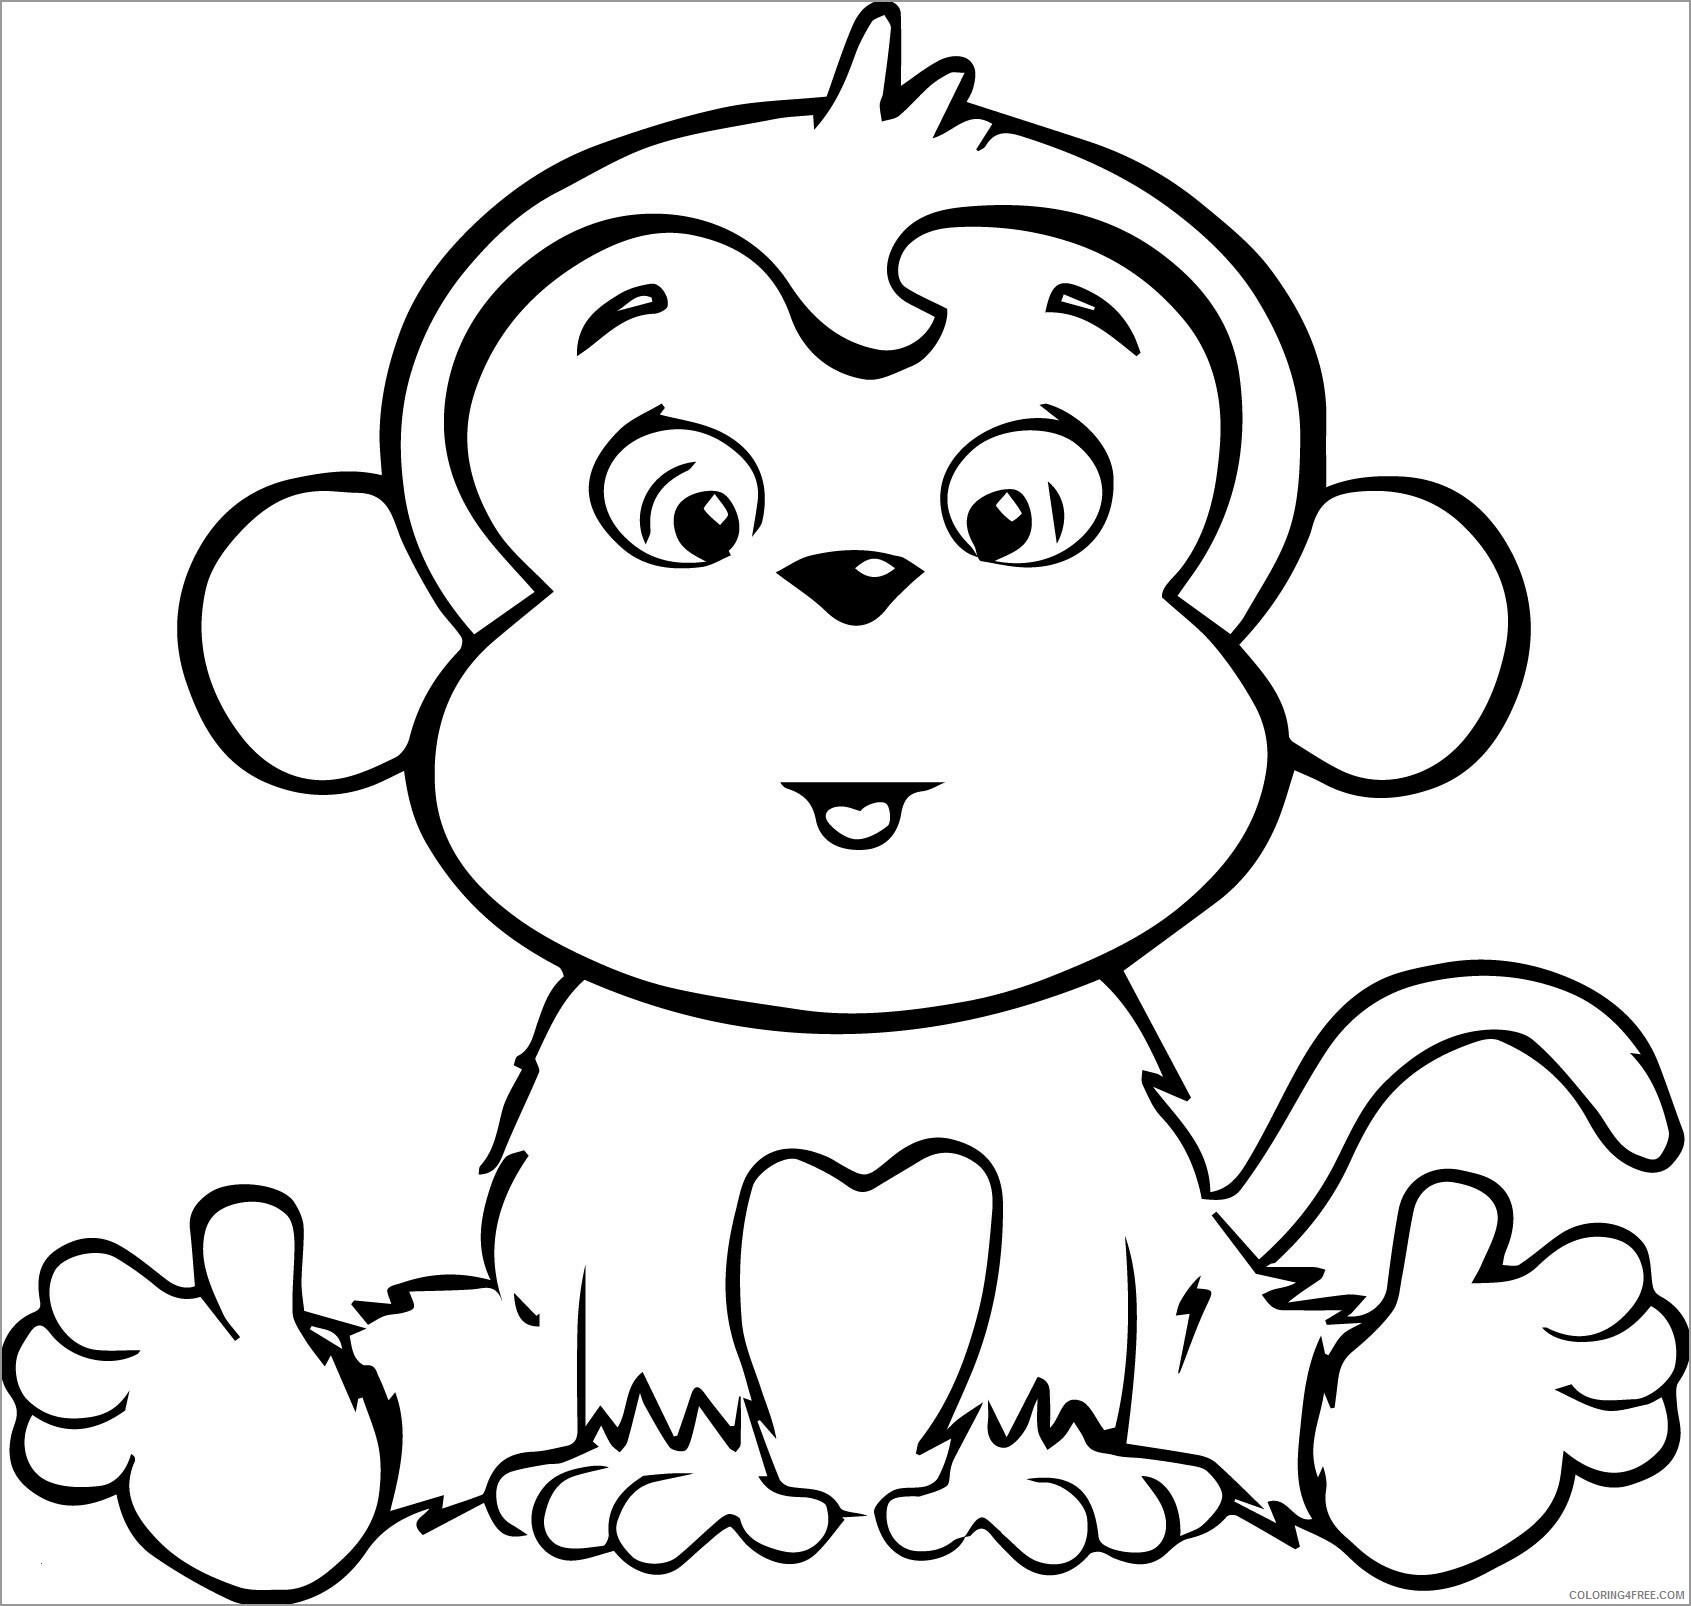 Monkey Coloring Pages Animal Printable Sheets baby monkey 1 2021 3282 Coloring4free